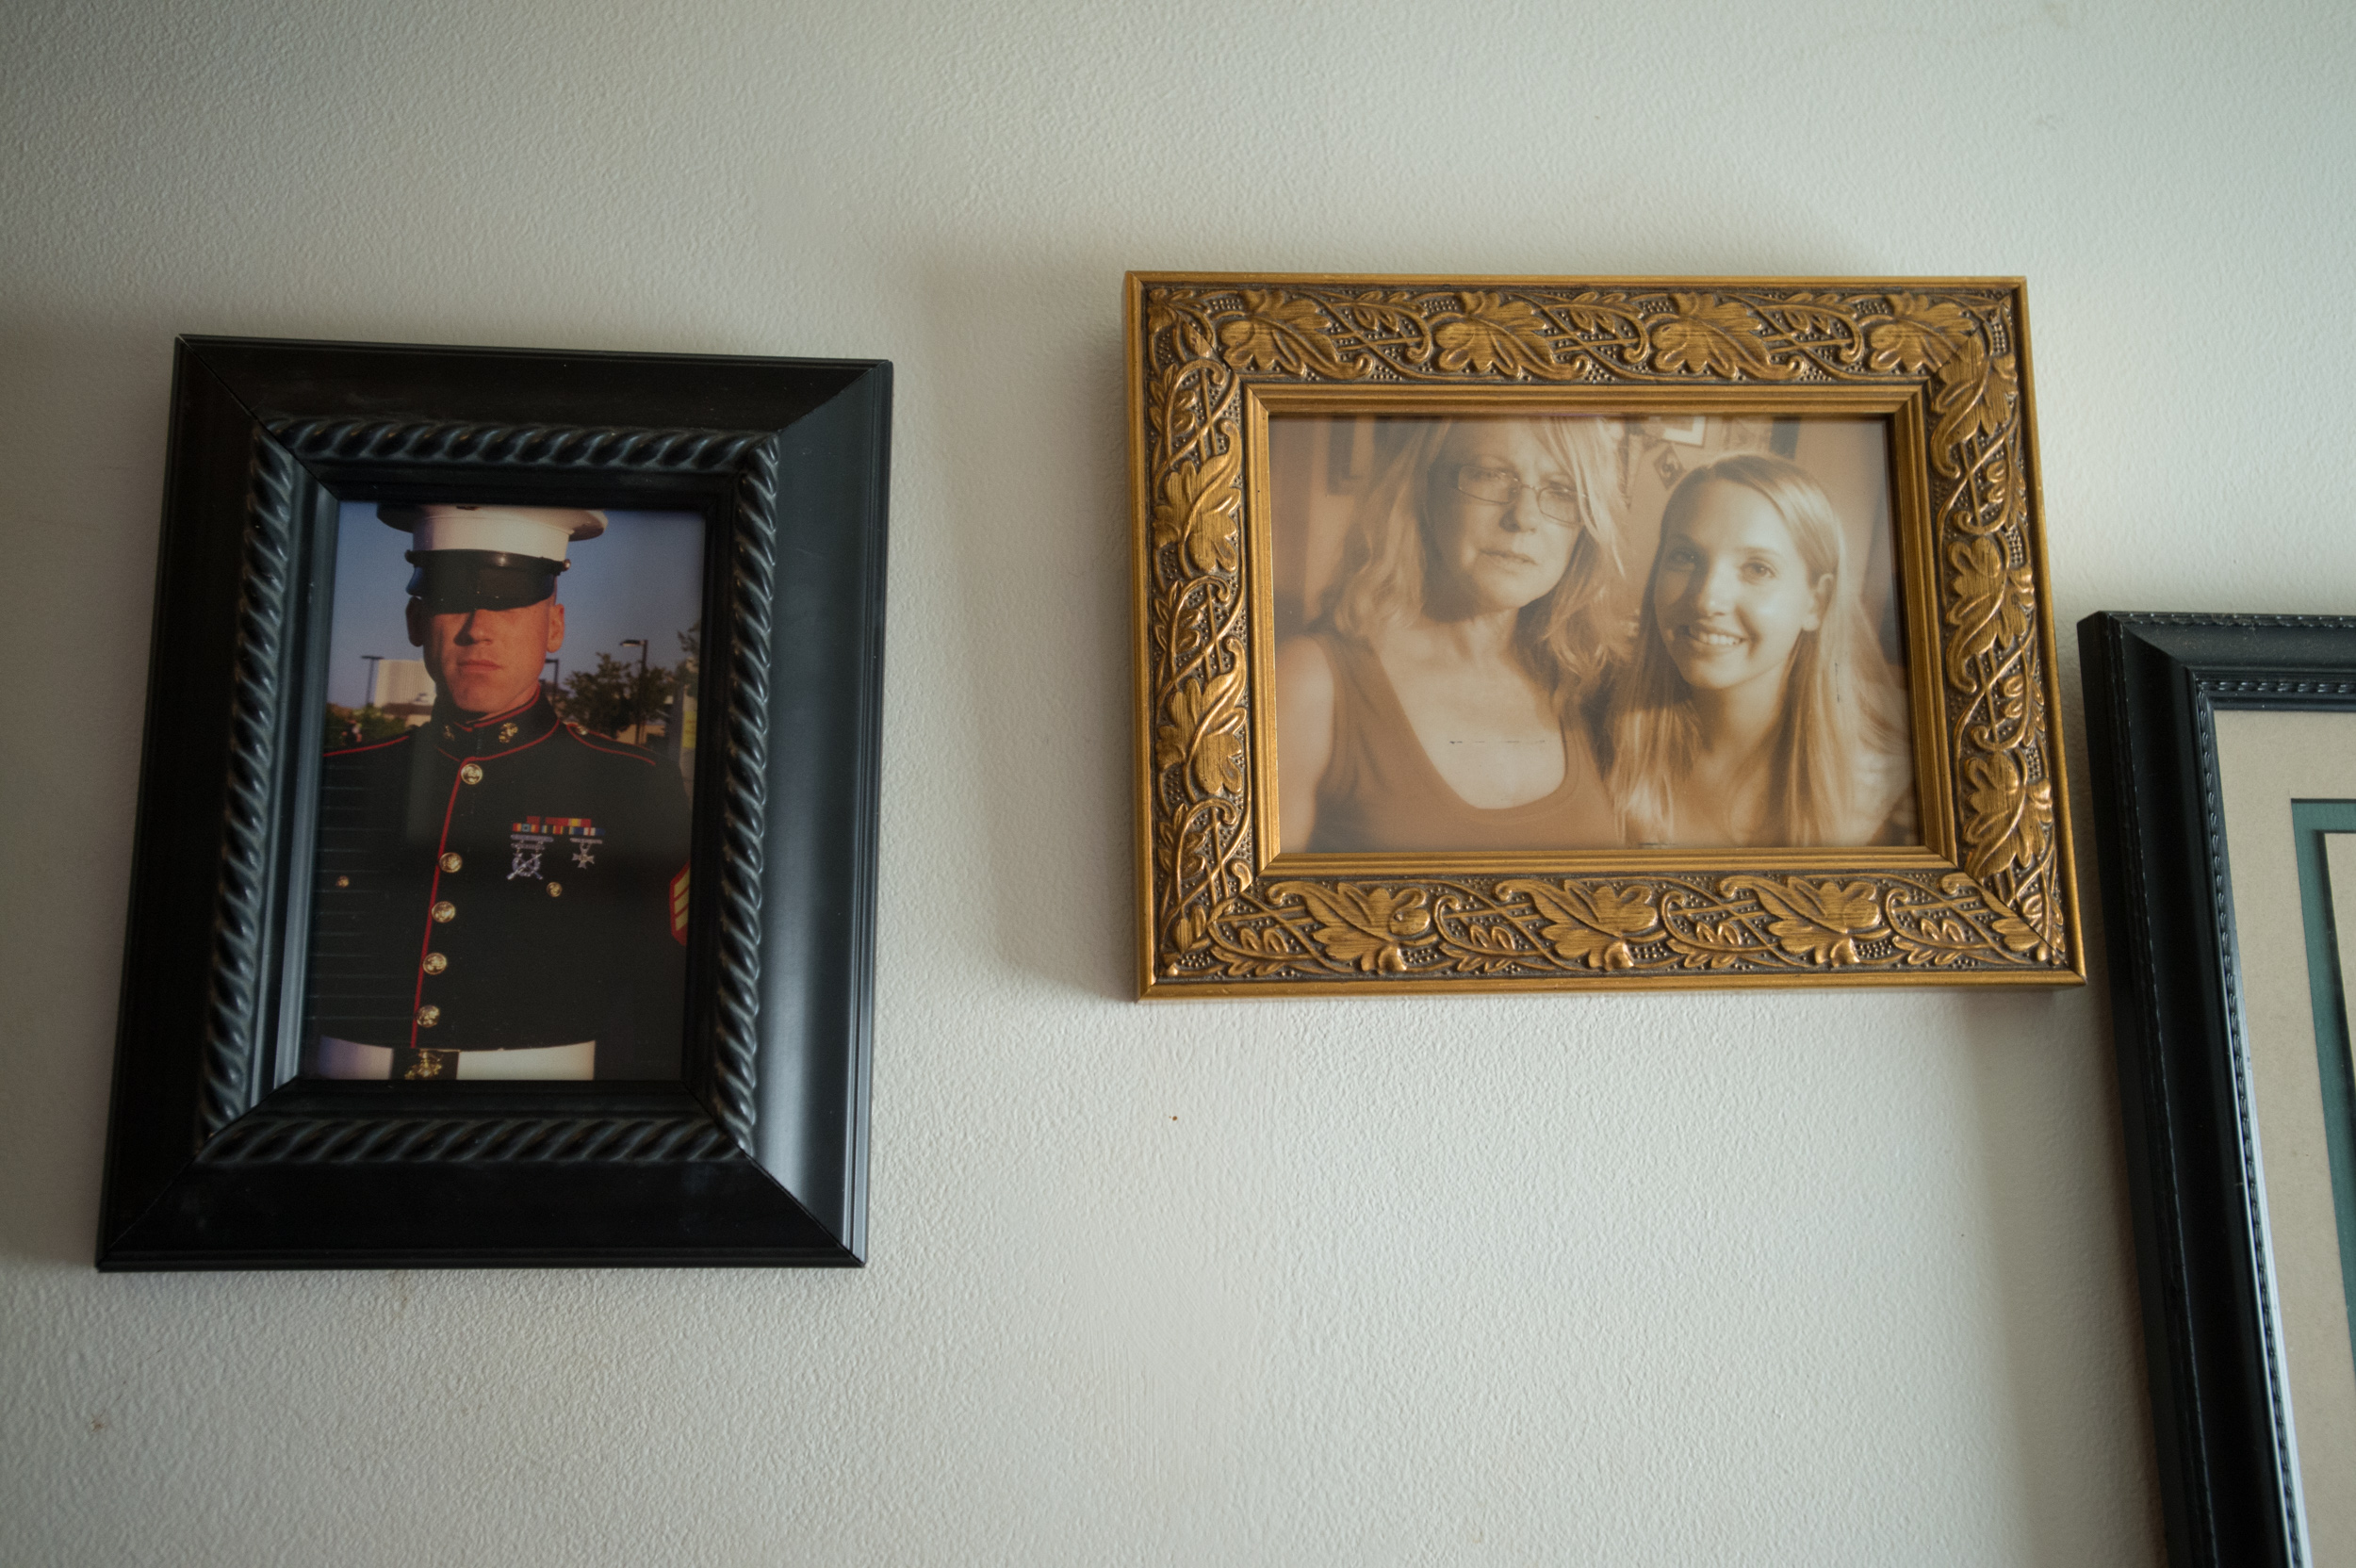 Photos of Carol's two children, Gabe Sloan and Margaret Elizabeth are among many wall hangings at Carol's house.